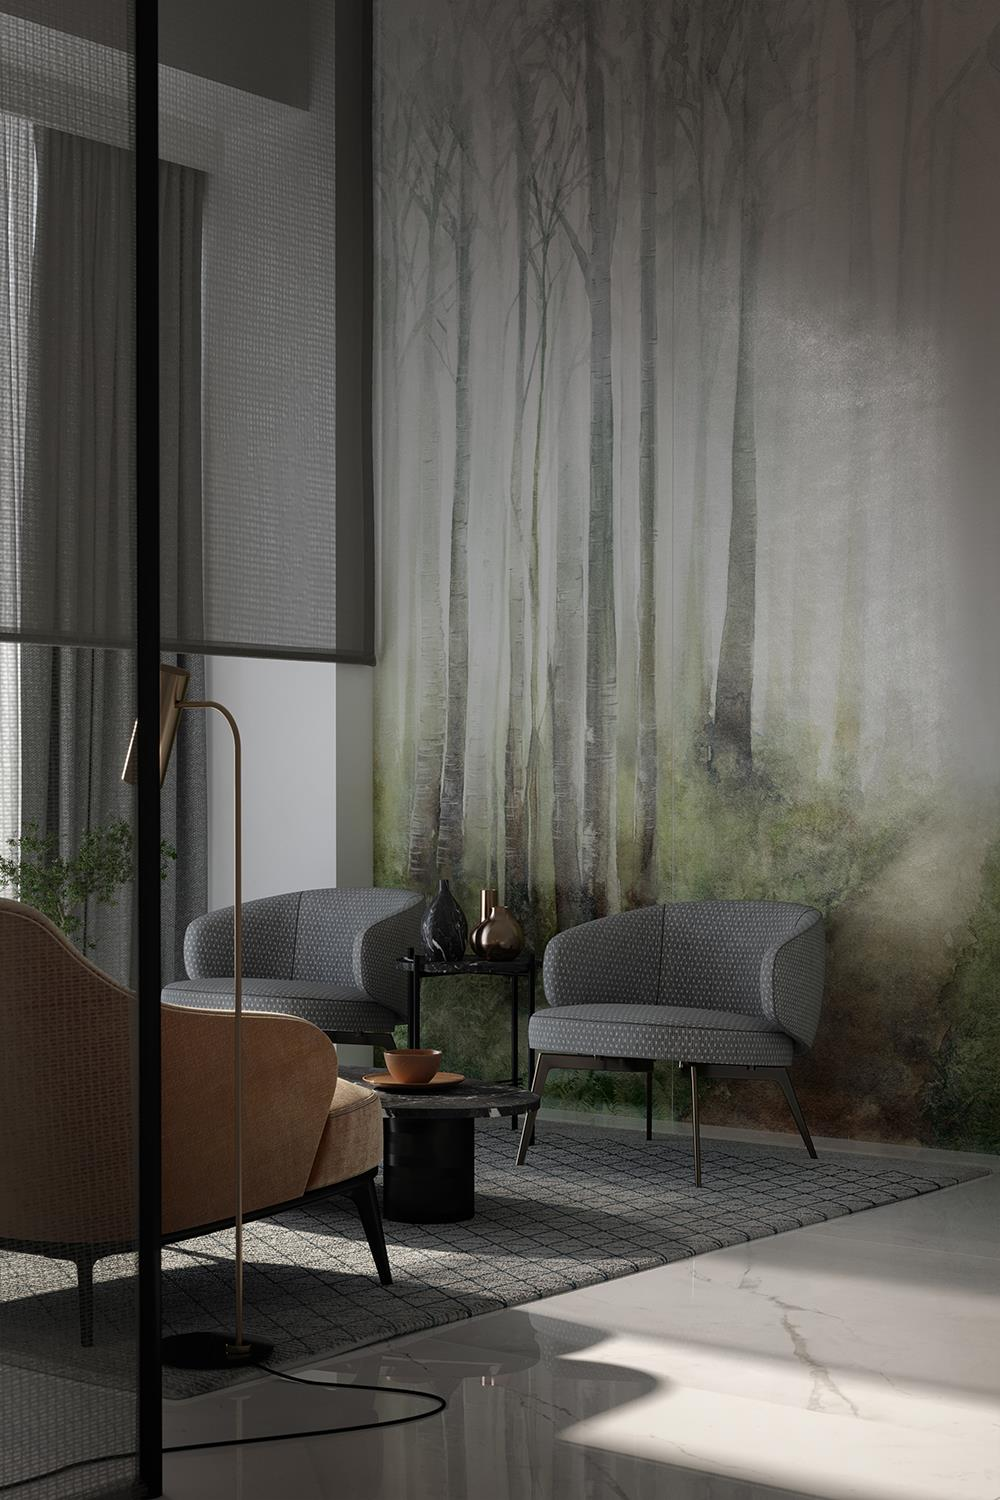 Cotto d'Este innovatively reinterprets wallpaper with ultra-thin ceramic slabs: Photo 1